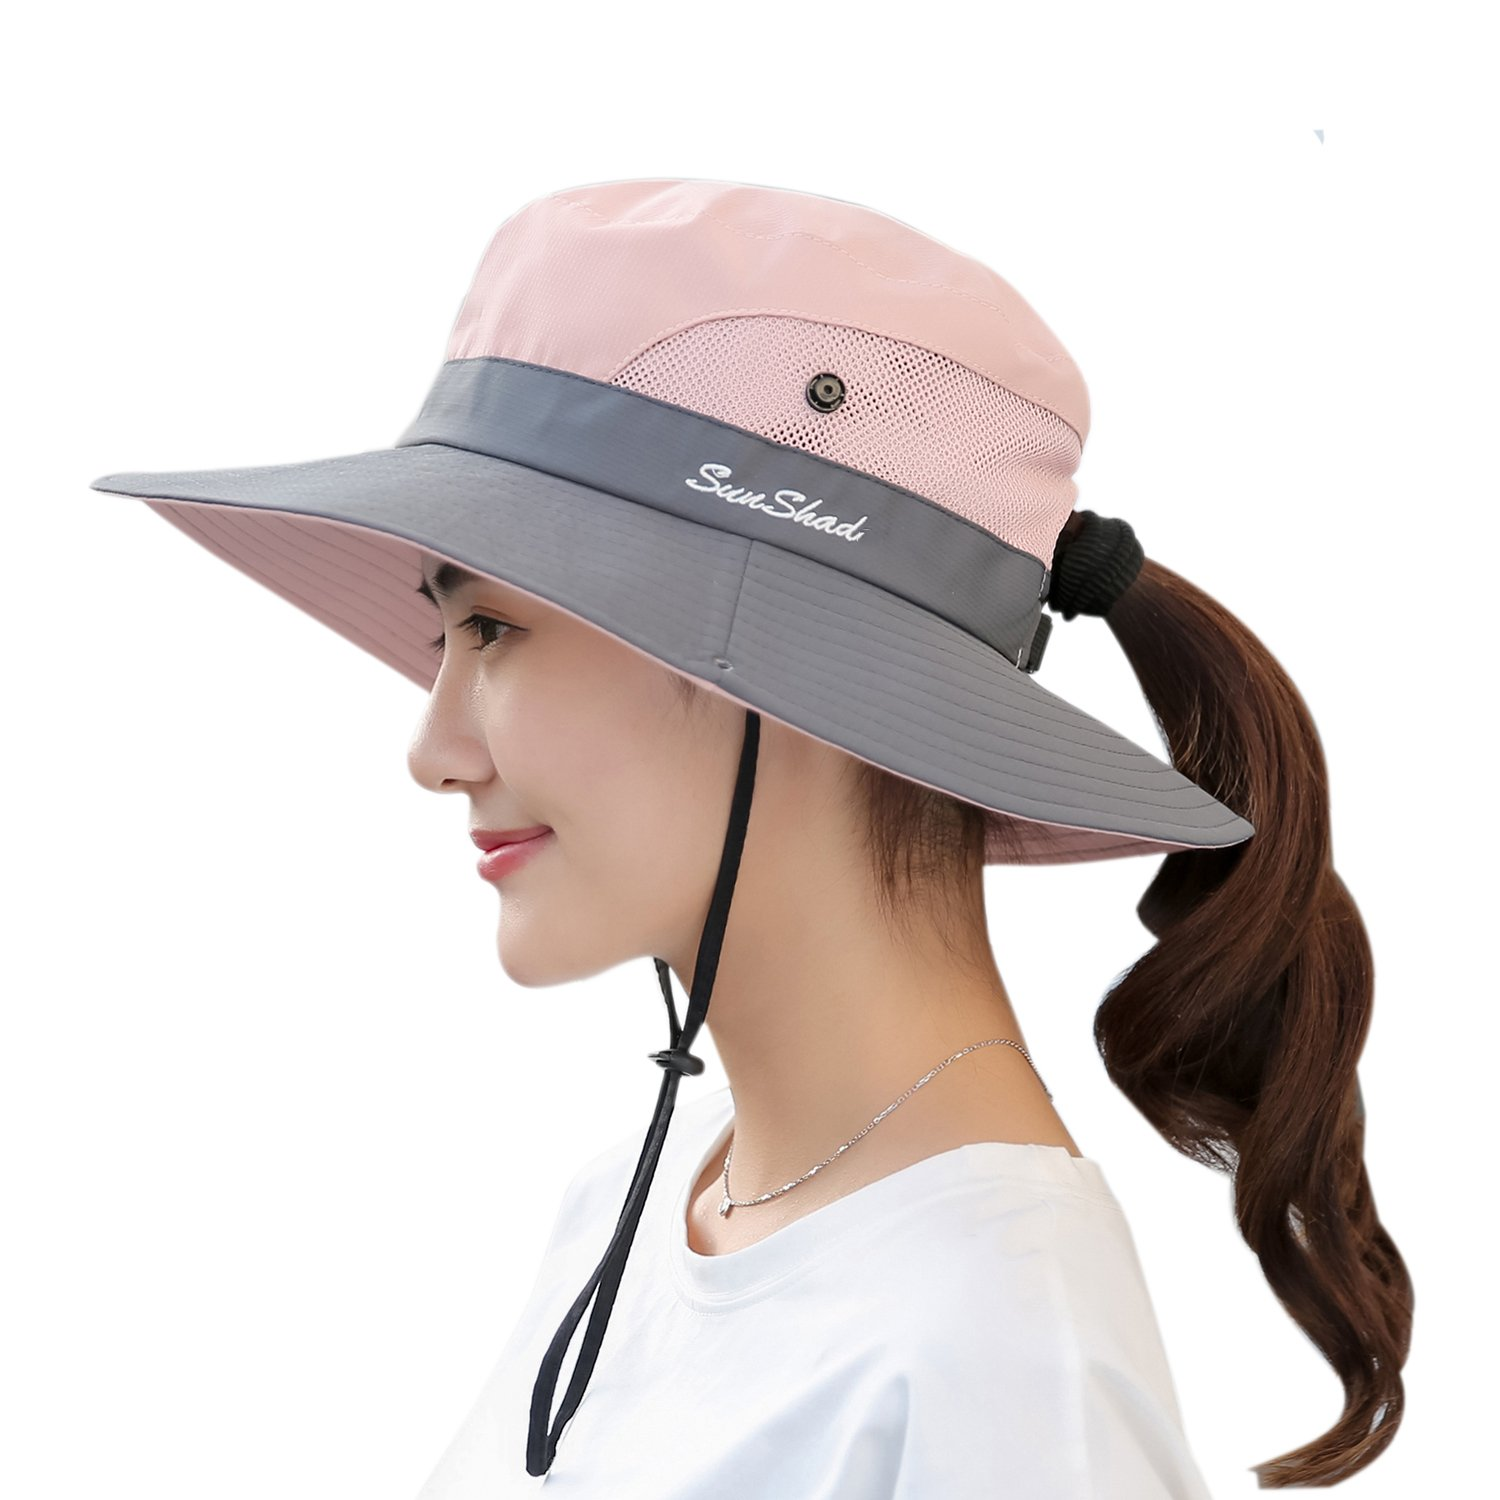 Muryobao Women s Outdoor UV Protection Foldable Mesh Wide Brim Beach  Fishing Hat product image 8568b1b81c10